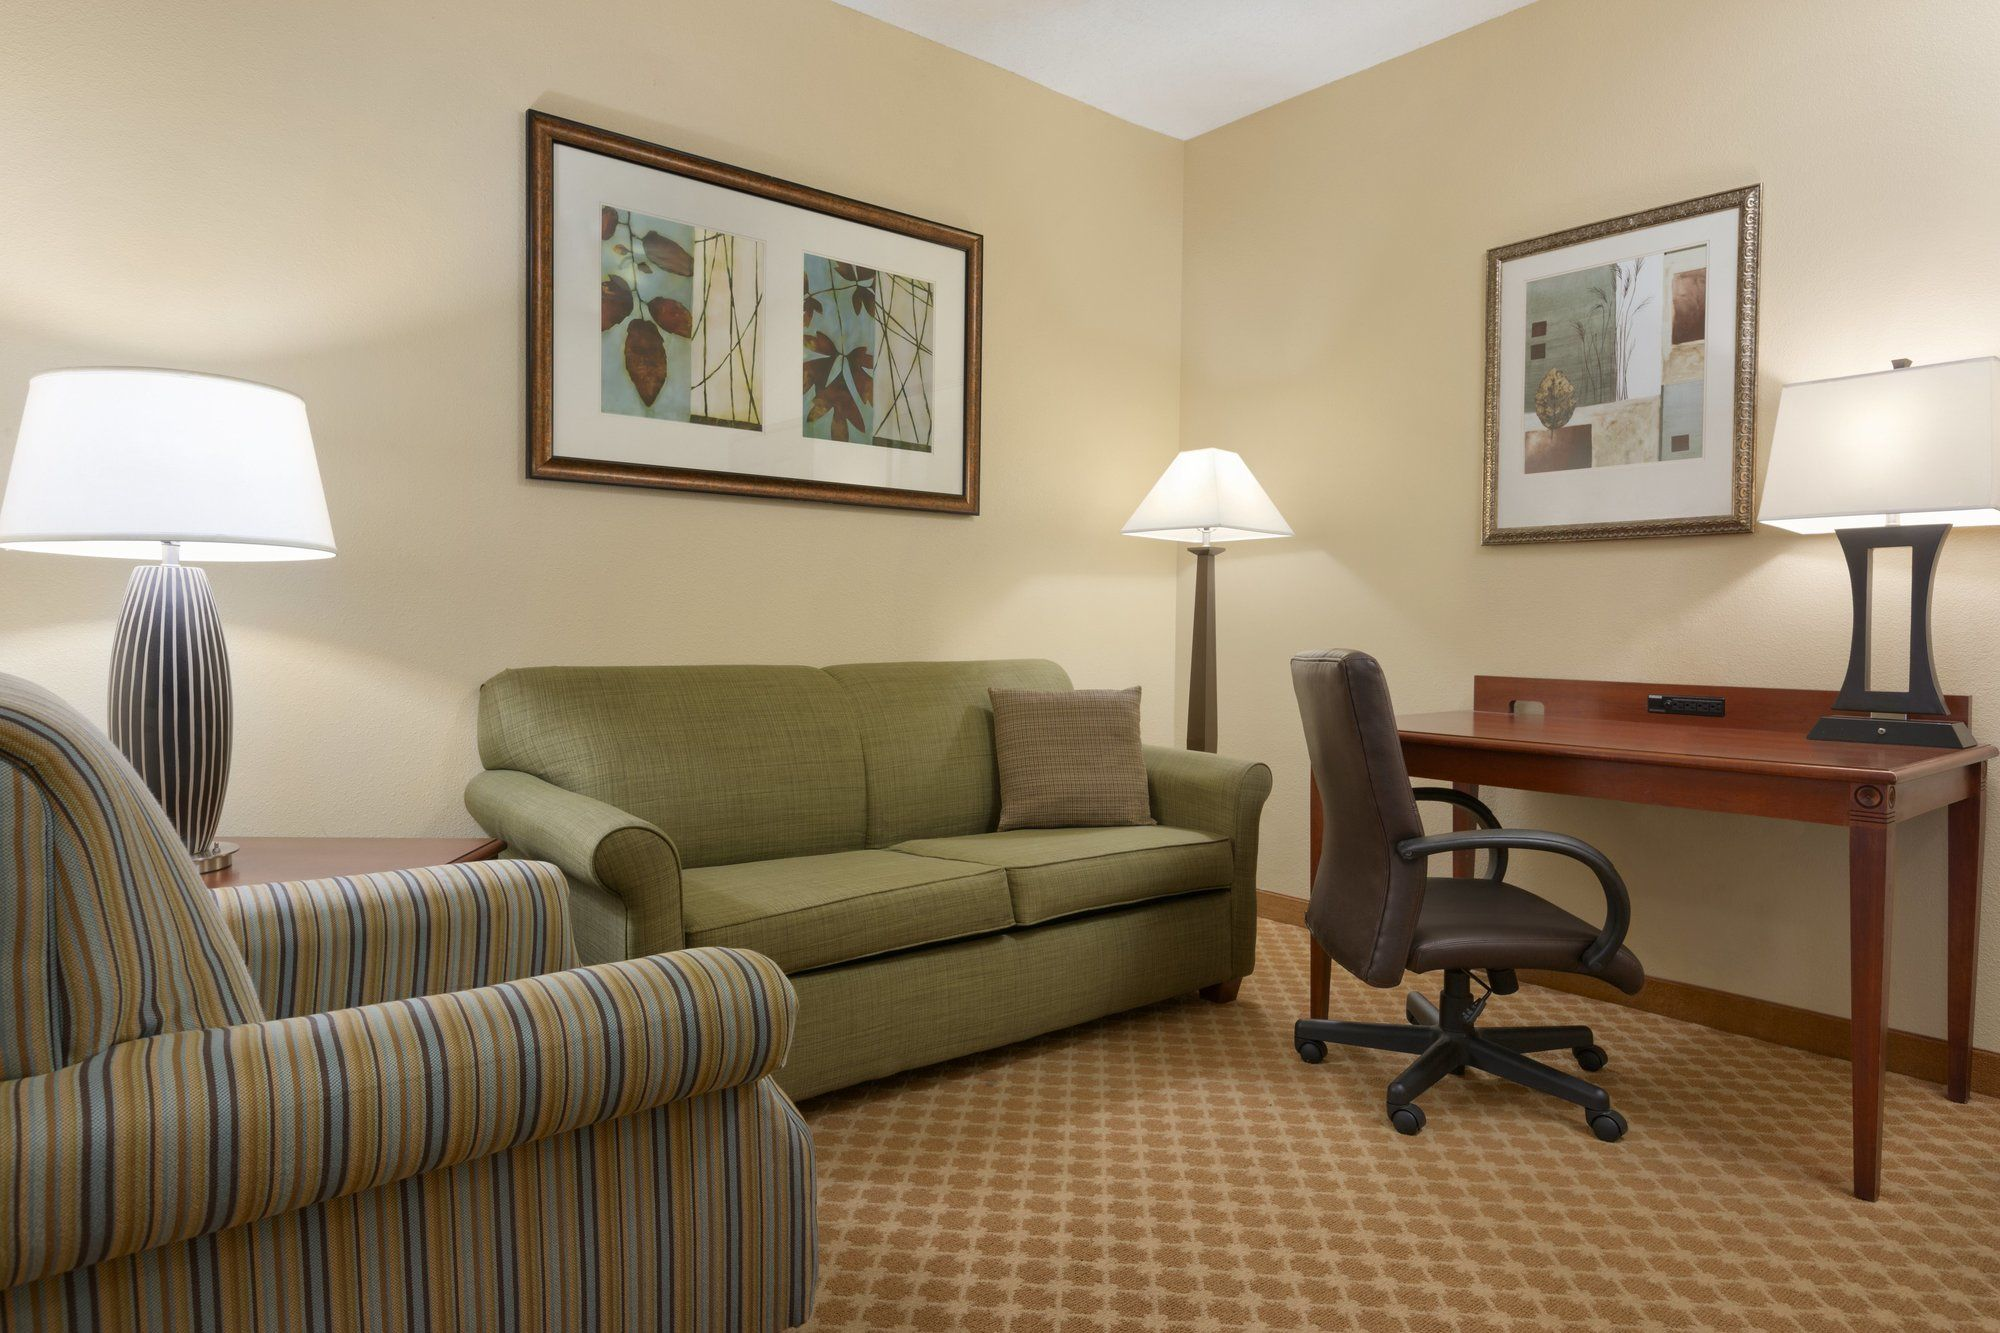 Country Inn & Suites Richmond in Richmond, VA